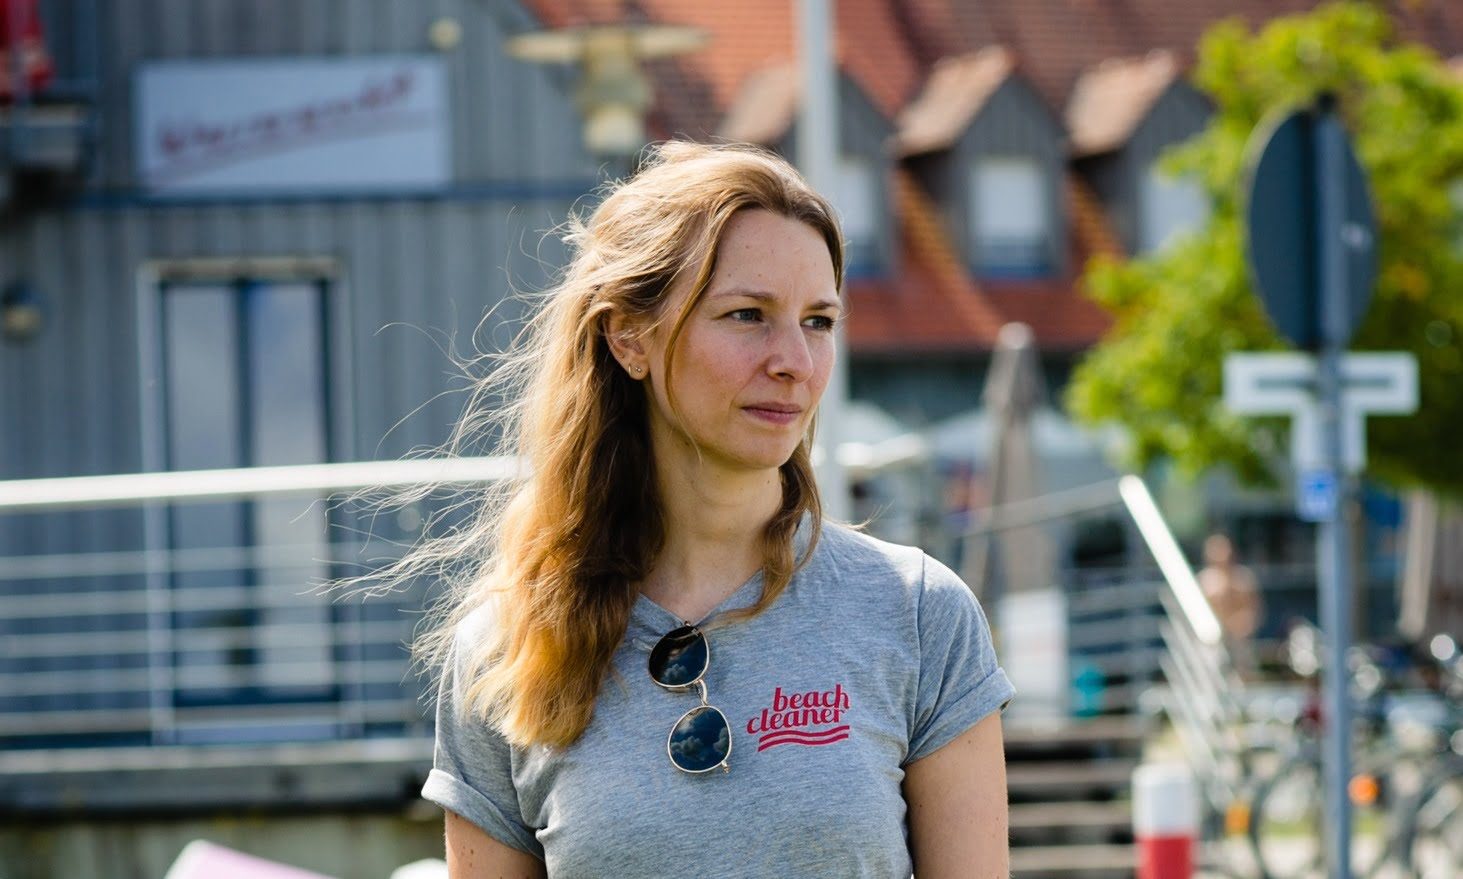 An Interview with Silvia Häberlein of beach cleaner